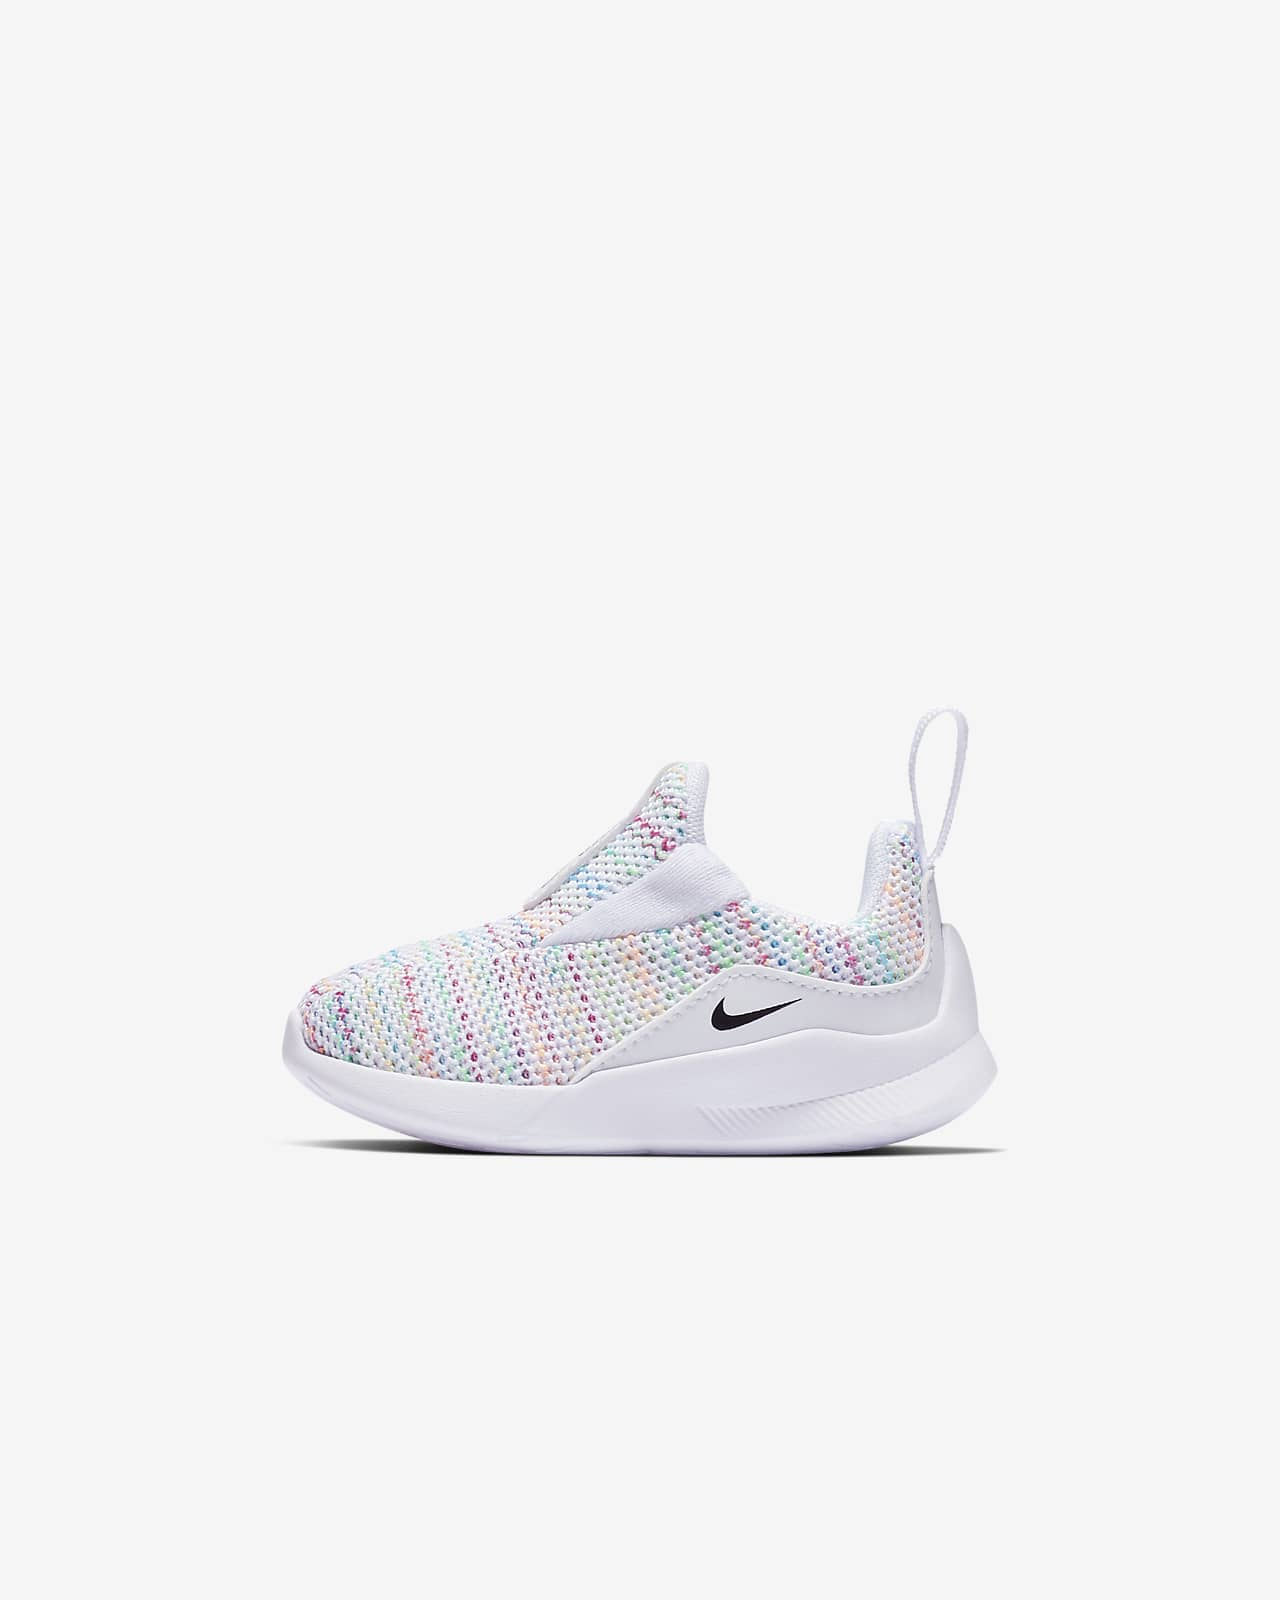 Nike Viale Space Dye Infant/Toddler Shoes